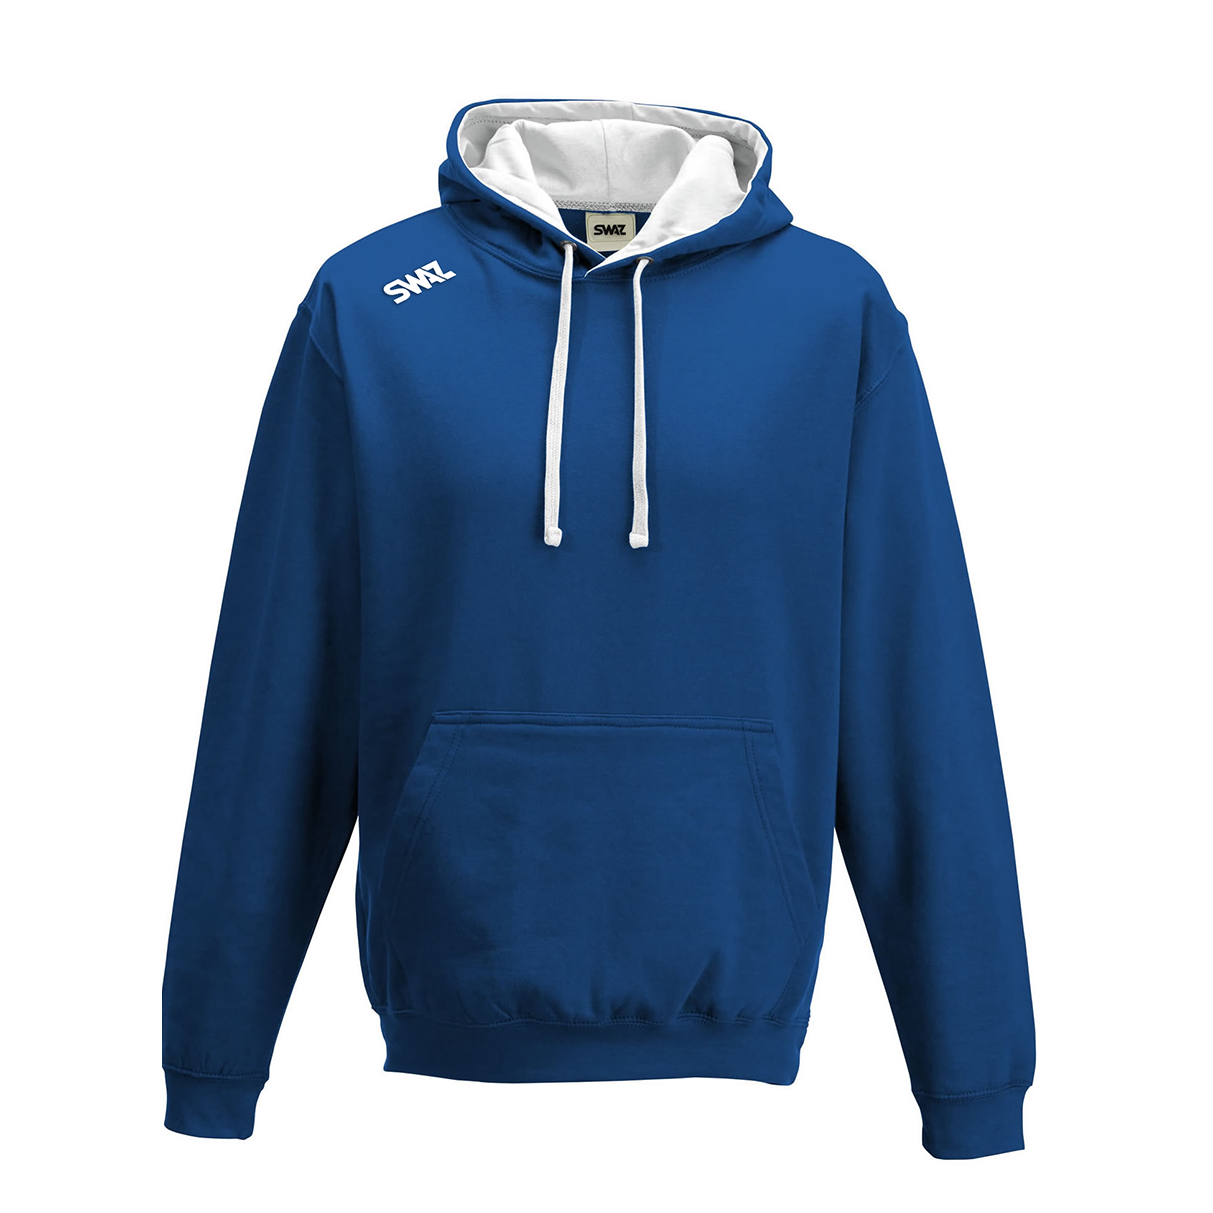 SWAZ Youth Club Hoody – Royal Blue/White